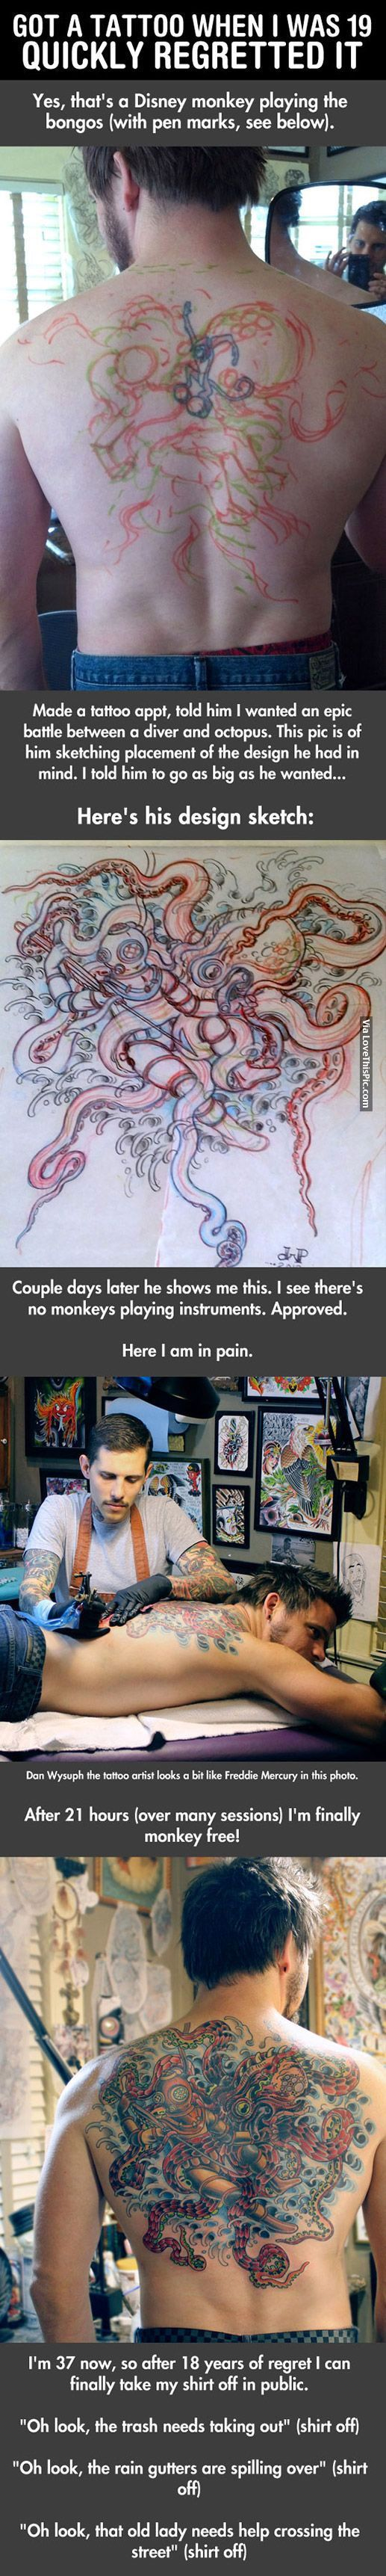 Guy Got A Tattoo When He Was 19 And Quickly Regretted It Pictures, Photos, and Images for Facebook, Tumblr, Pinterest, and Twitter